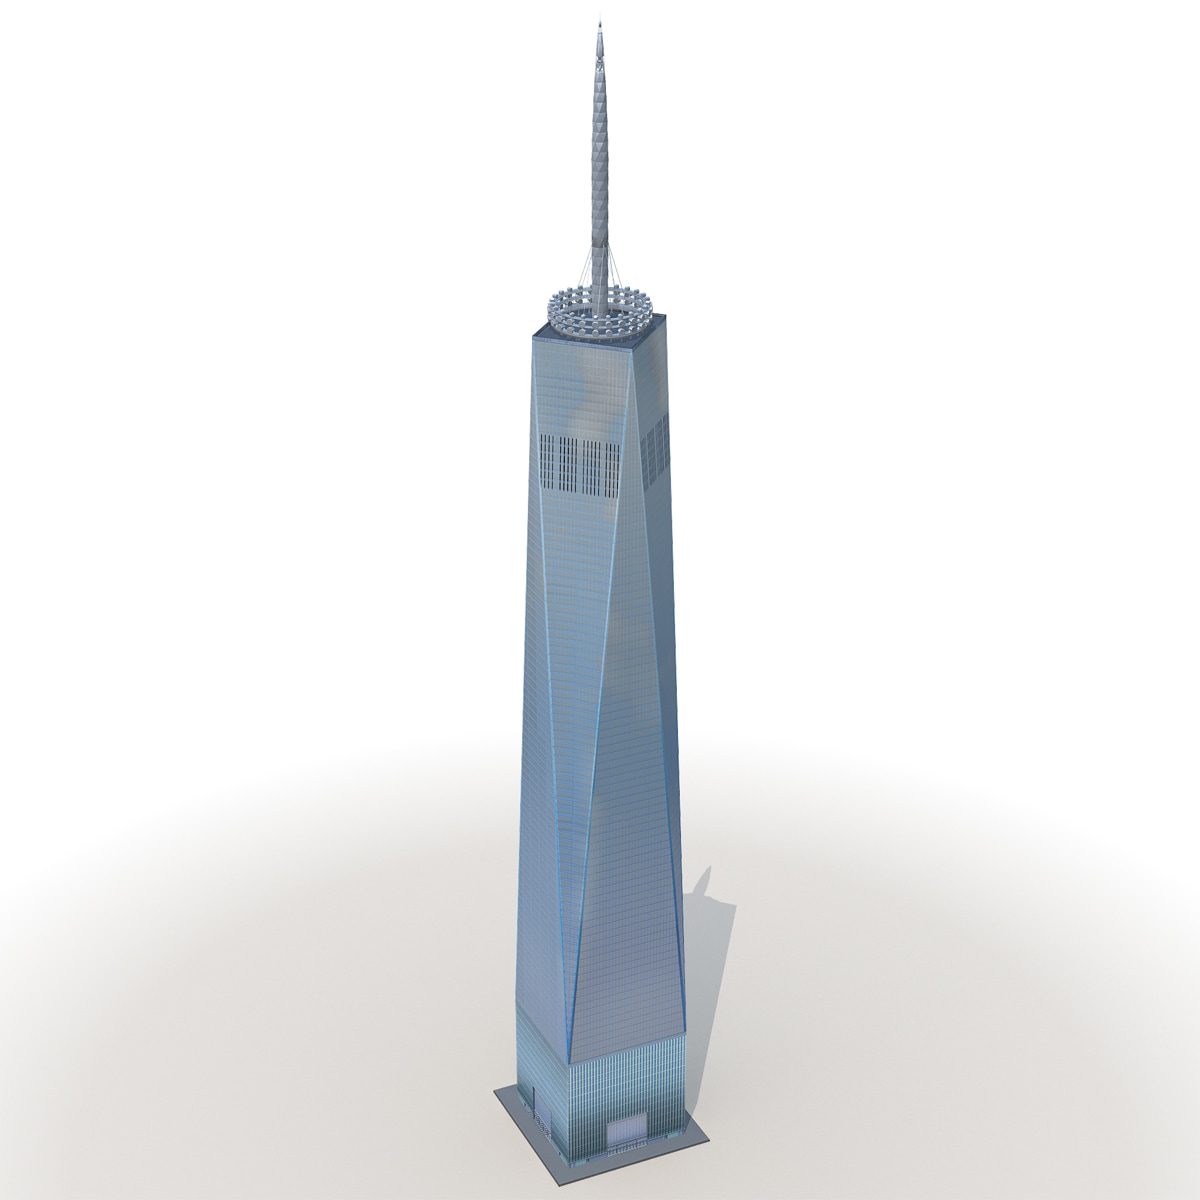 005_One_World_Trade_Center_Low_Poly.jpg